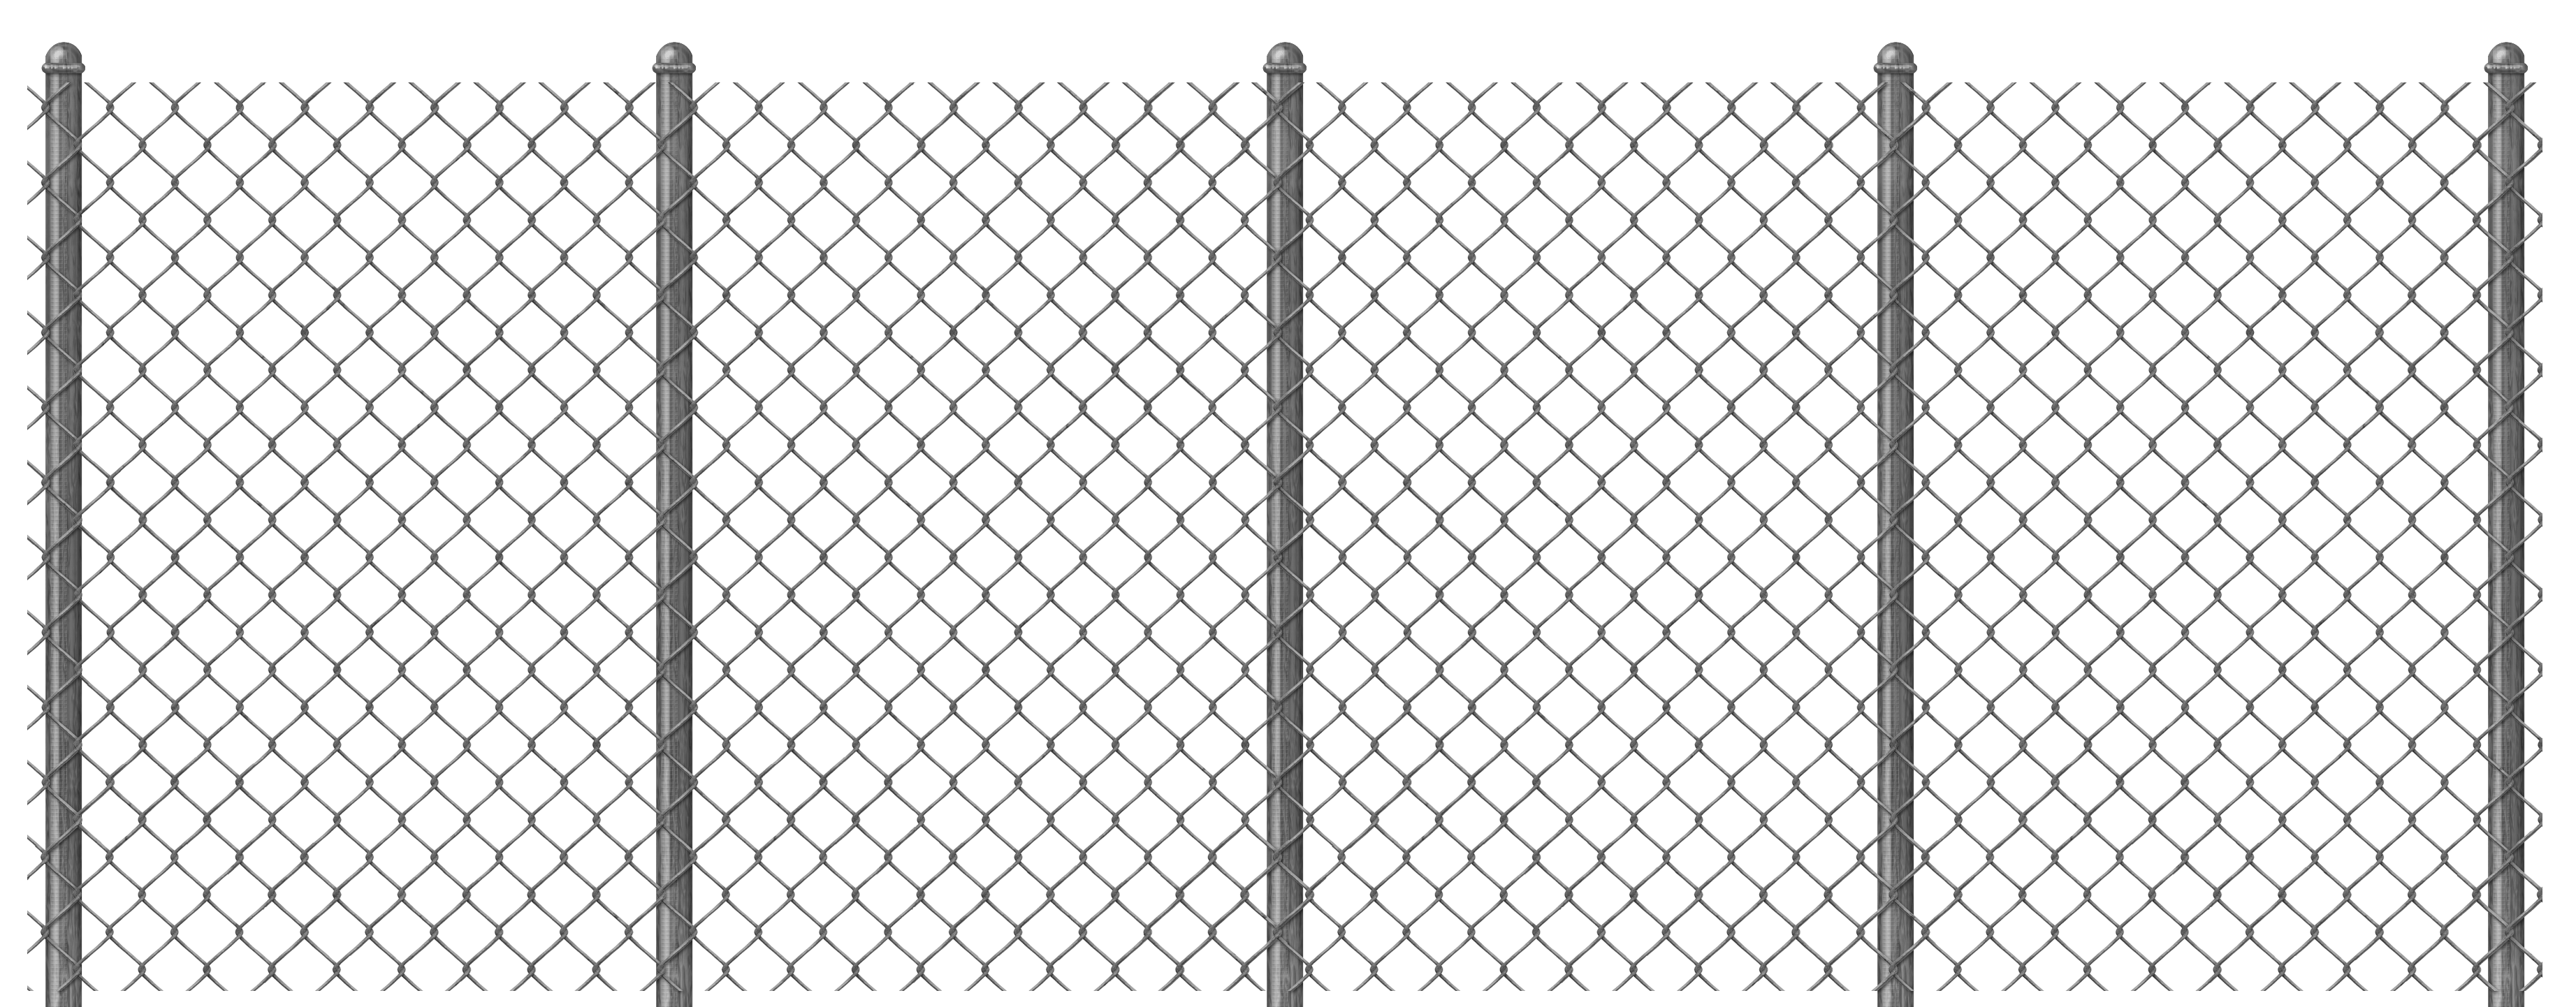 Fence clipart electric fence. Barbed wire wall art